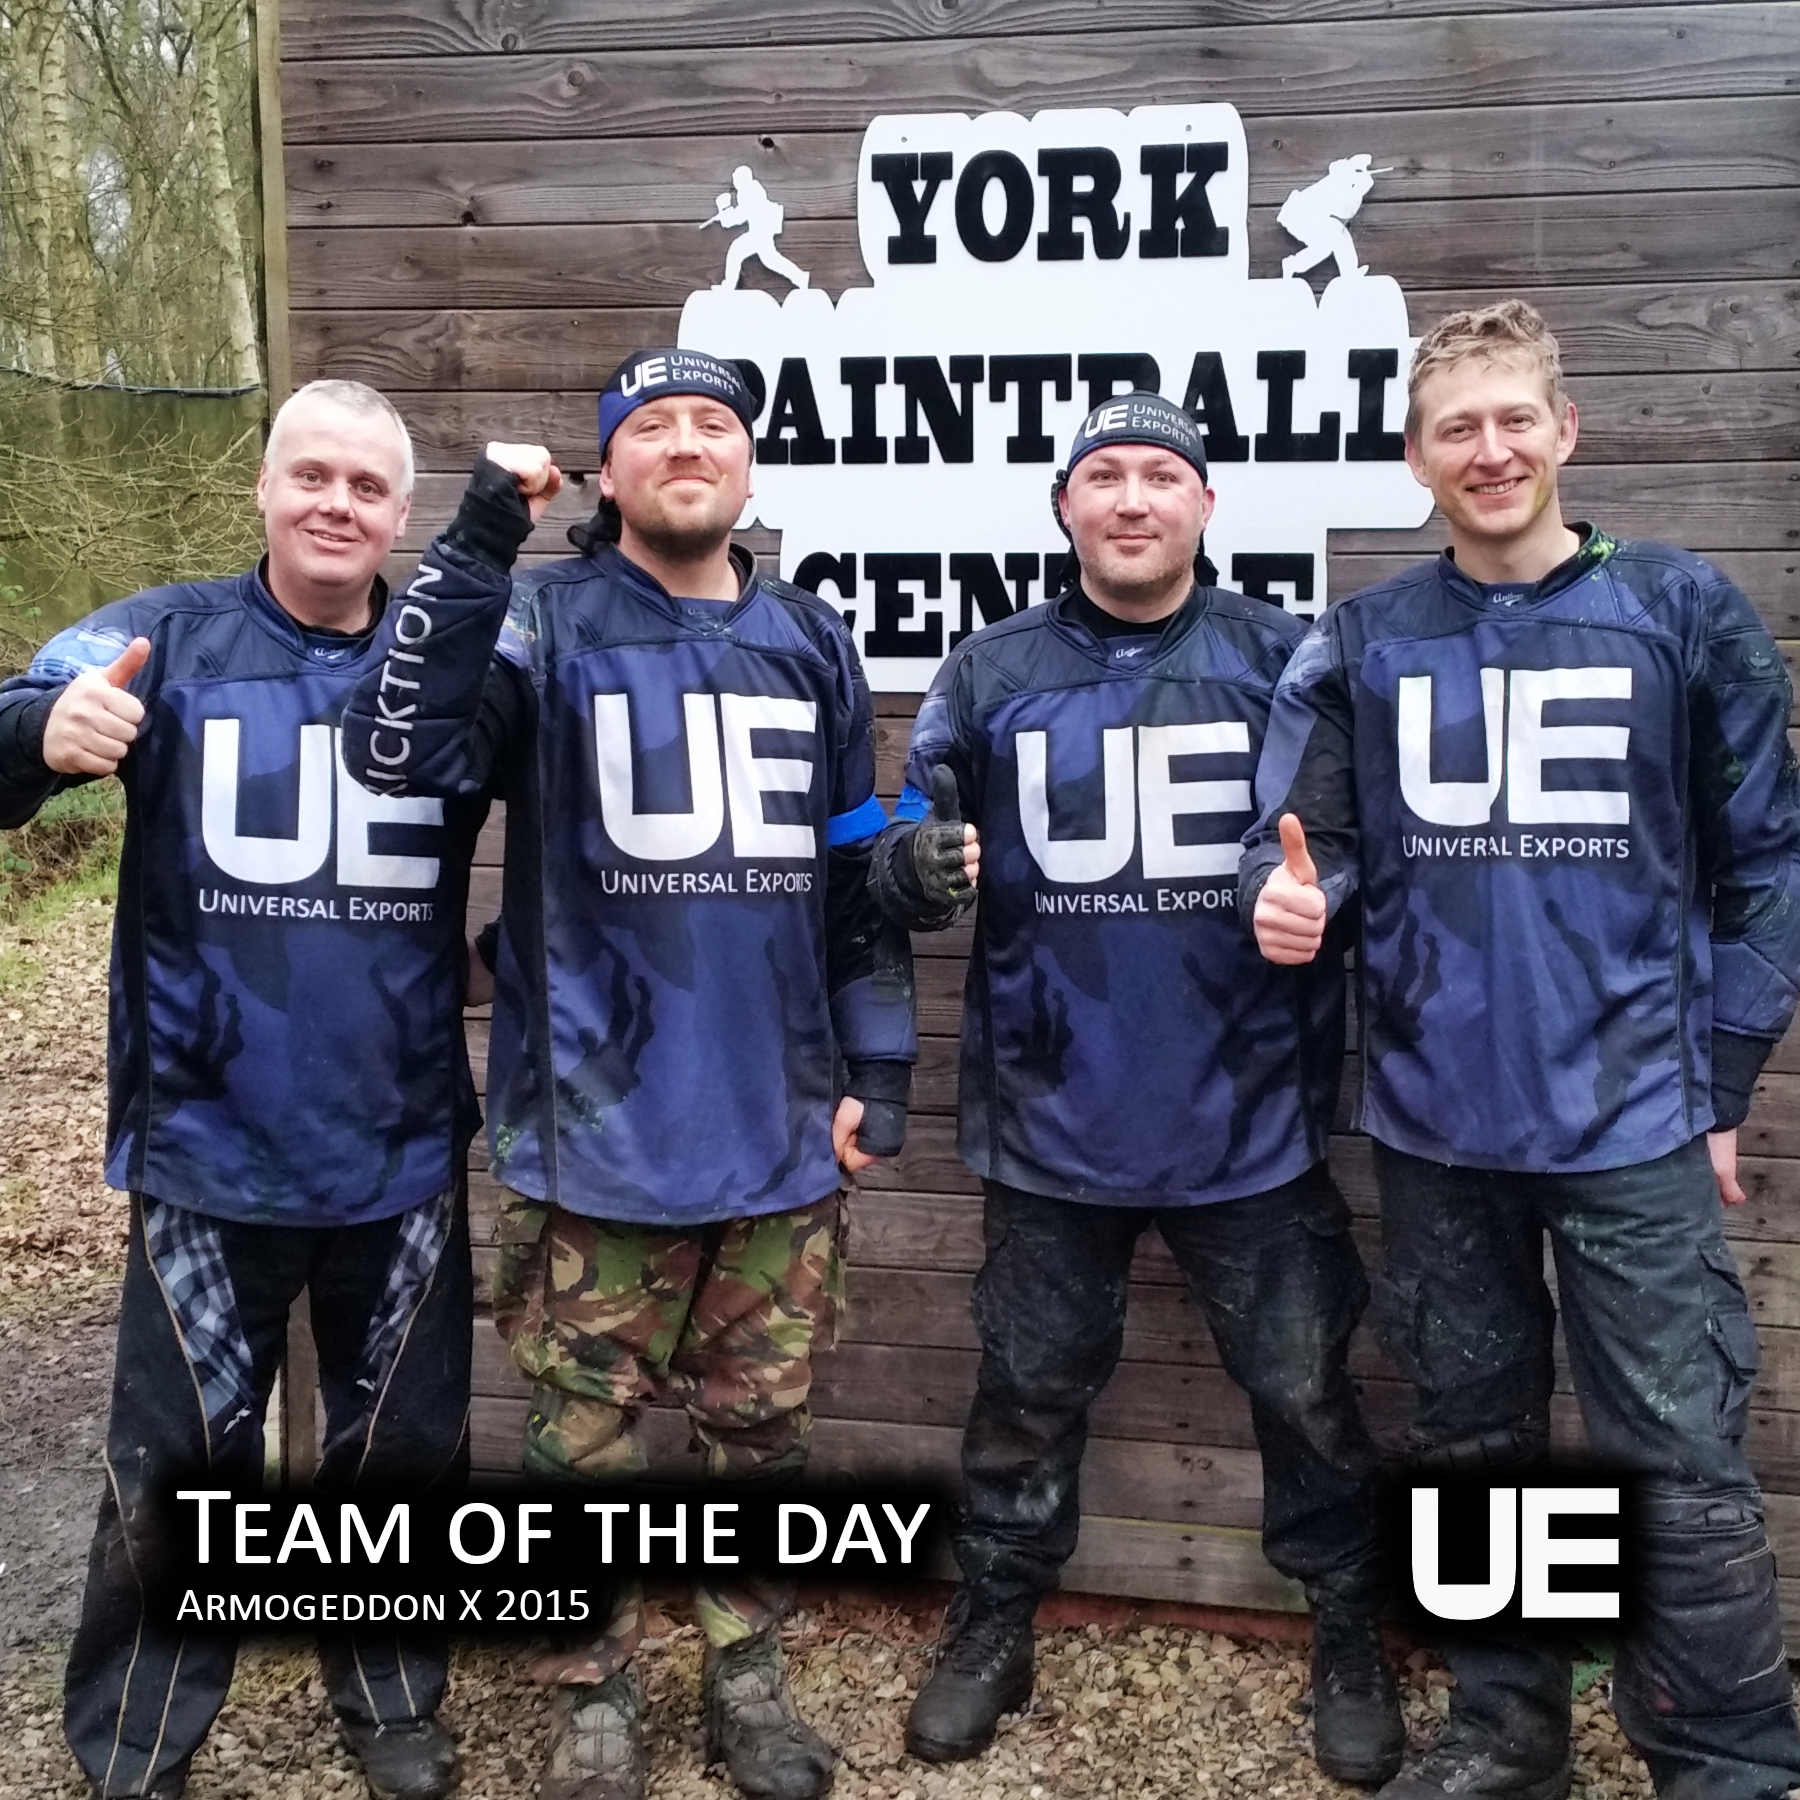 Armogeddon 2016 UE are Team of the Day